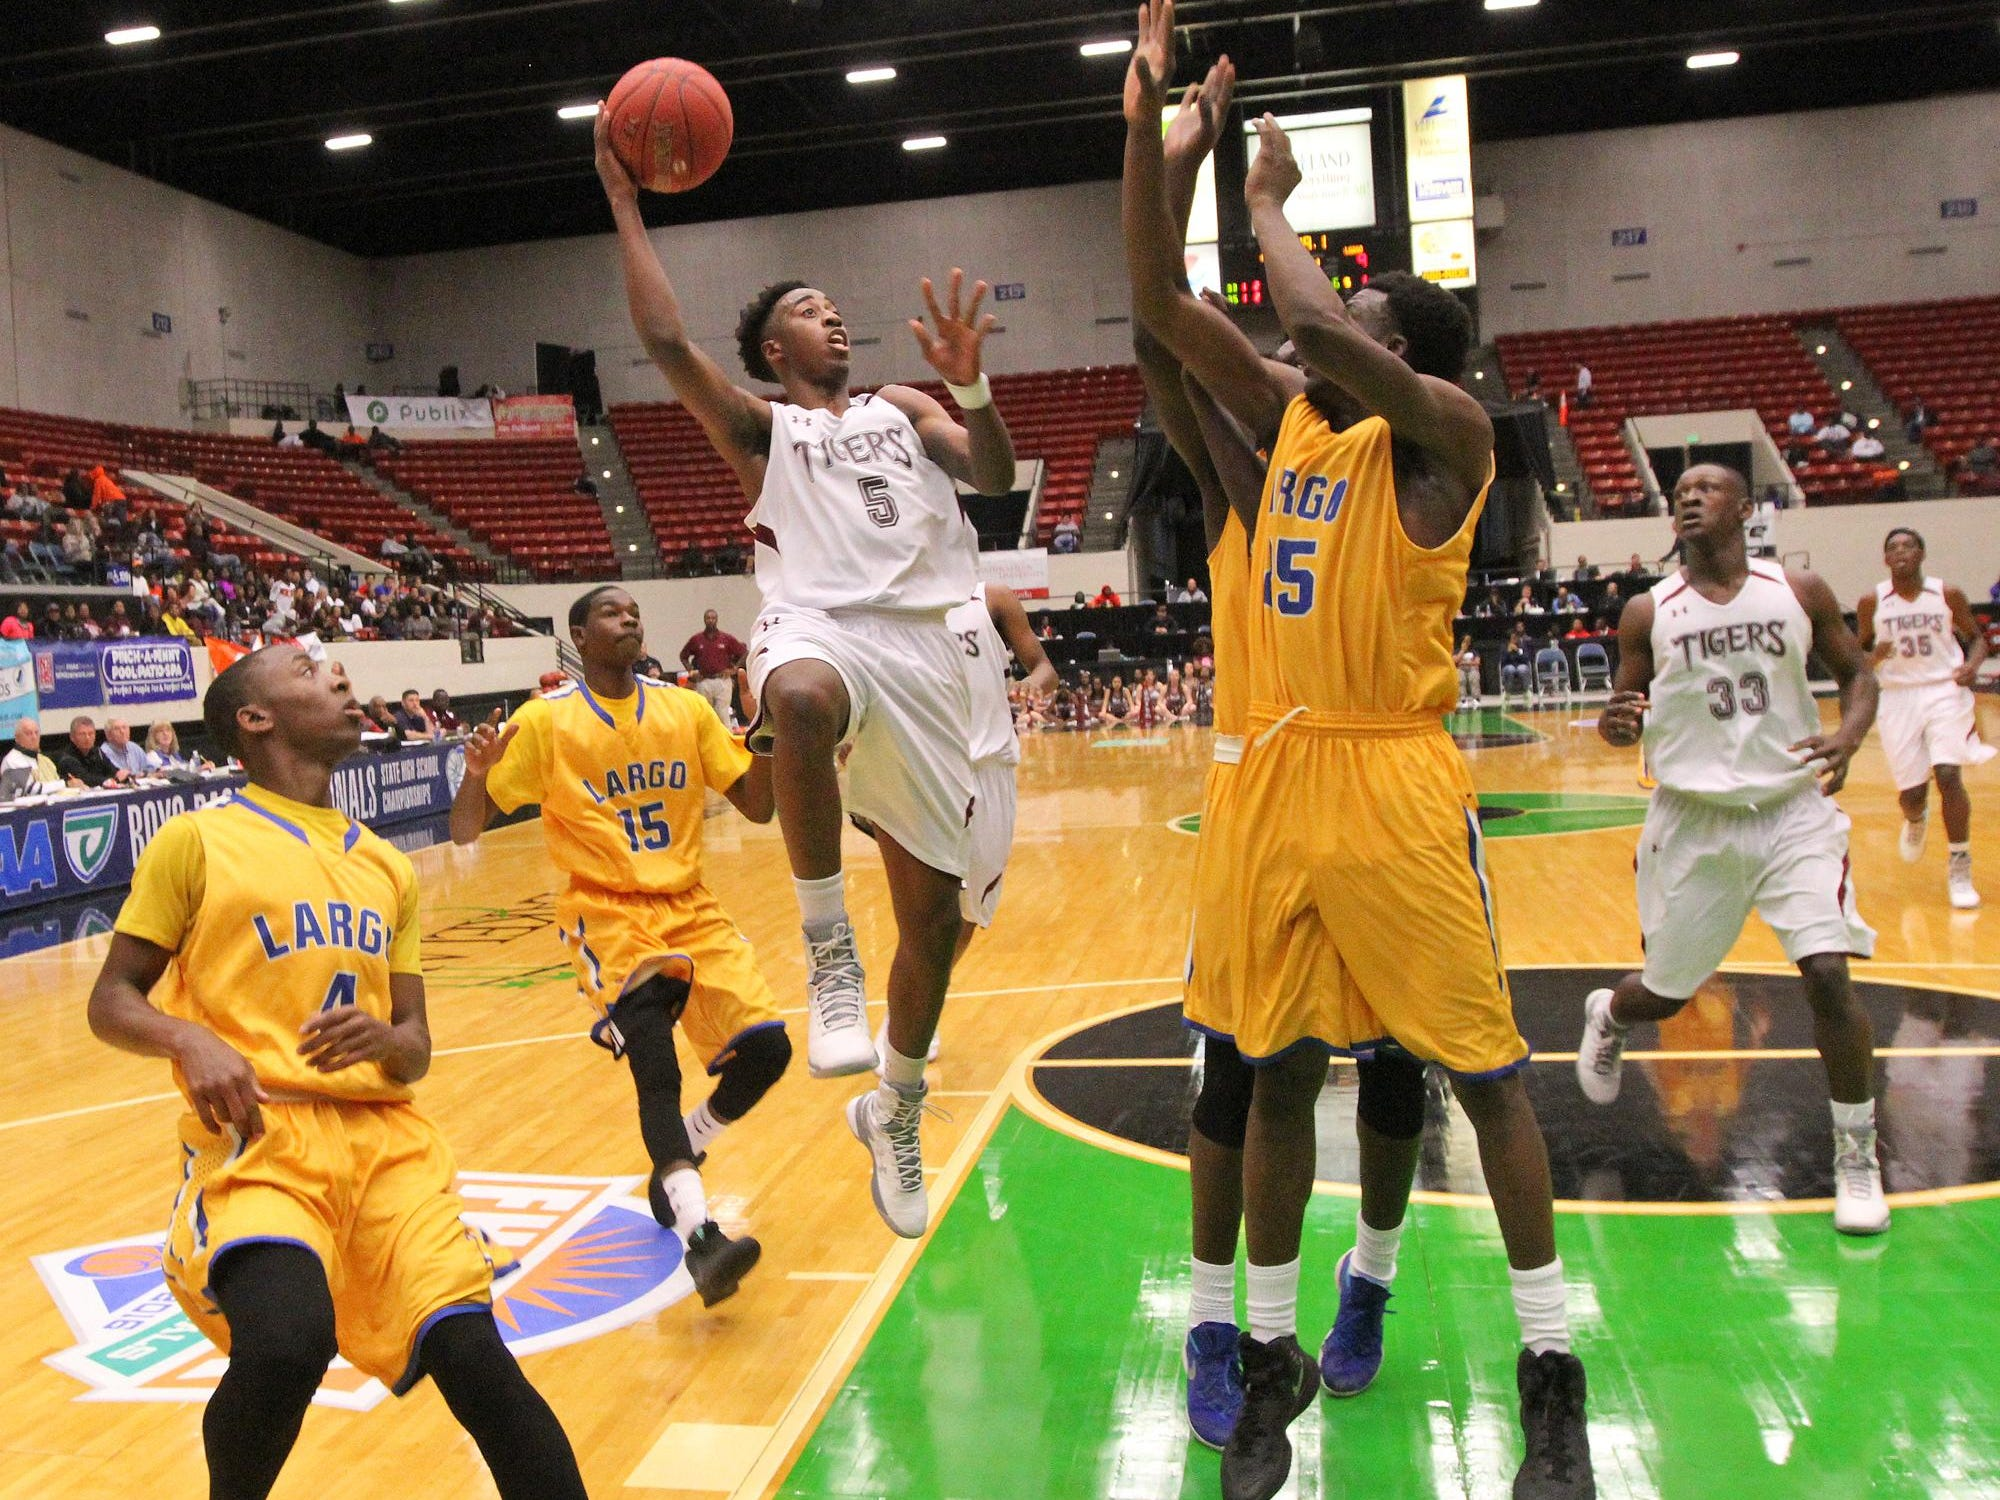 Pensacola Shawndarius Cowart looks for the basket as Largo defense try to block during the FHSAA 6A semi final Friday February 26, 2016 in Lakeland, Florida. Pensacola lost the match 54-56. Photos by Cindy Skop 2016